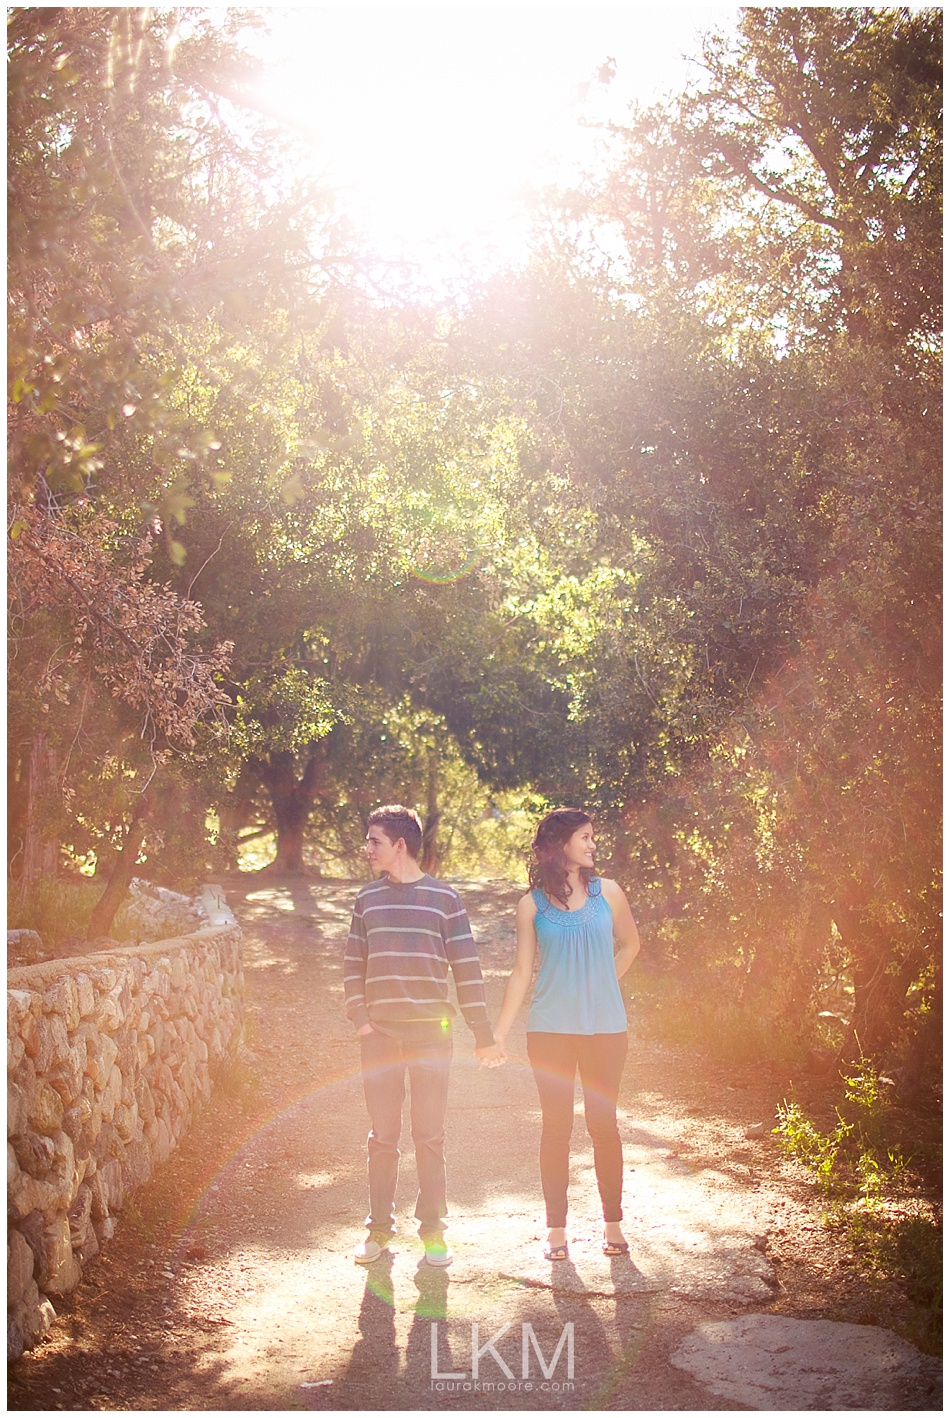 Nathan-Emily-Mt-Baldy-Engagement-Session-Los-Angeles-Wedding-Photographer_0005.jpg